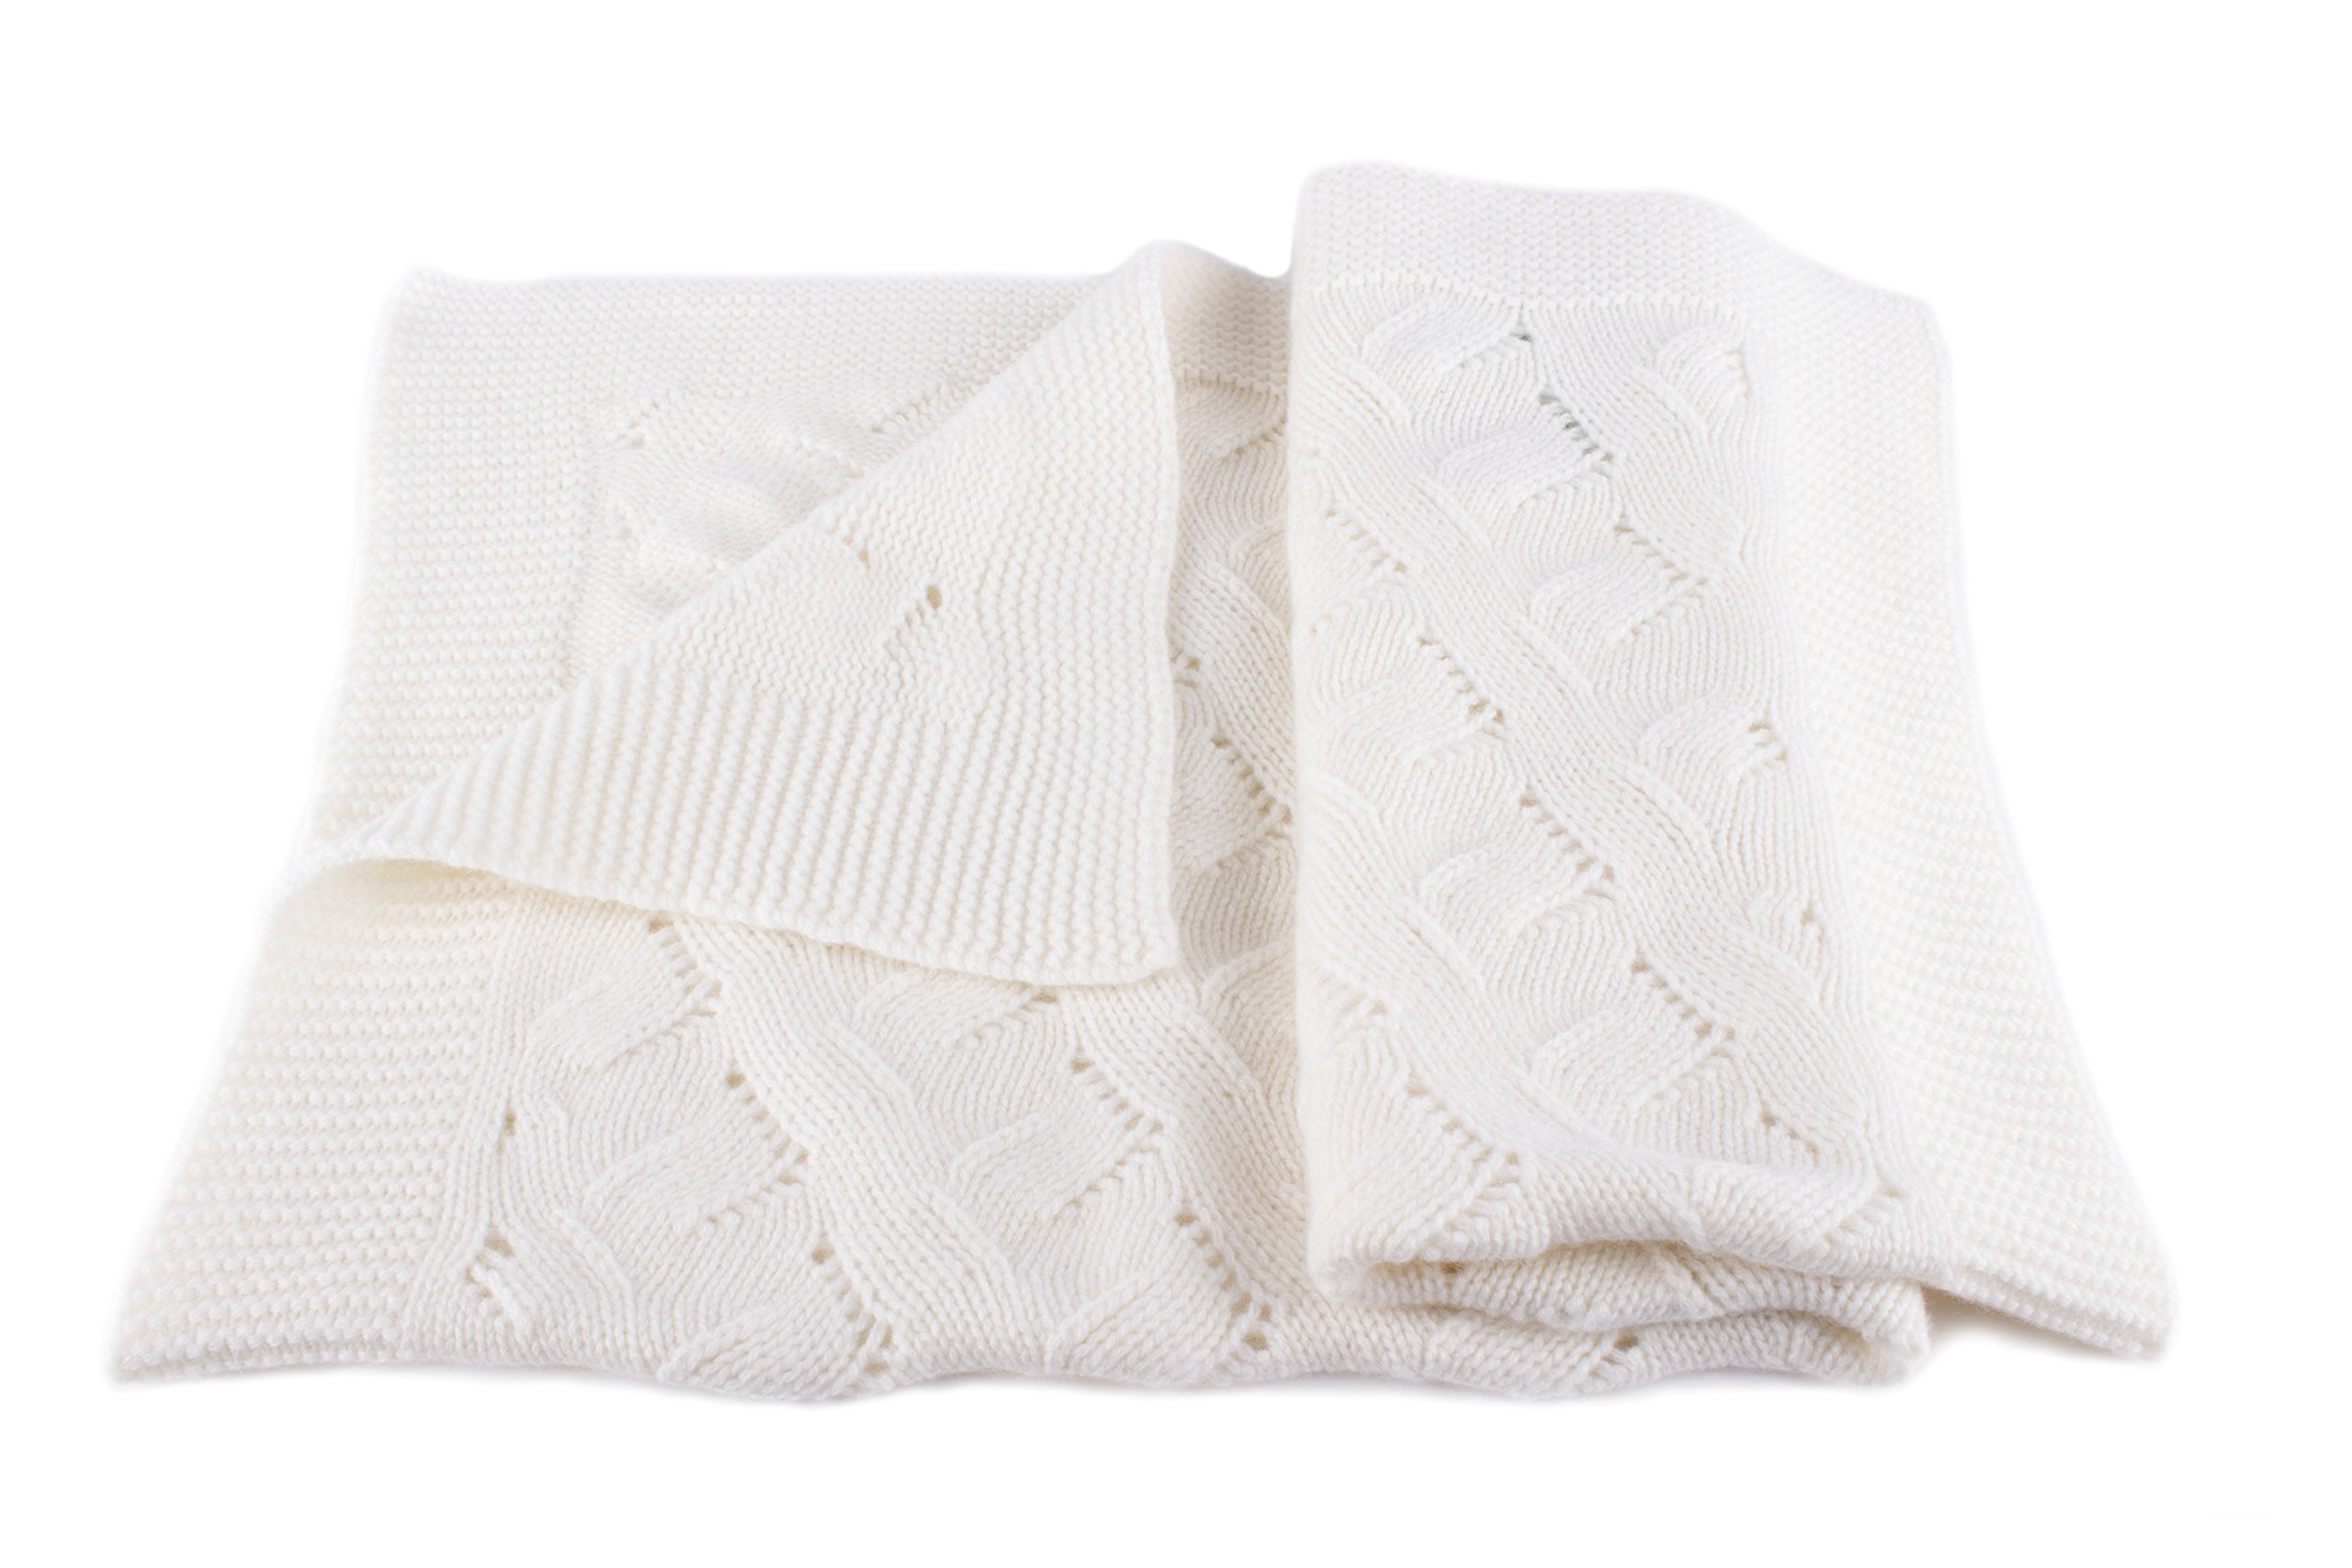 Unisex Luxury 100% Cashmere Baby Blanket - 'White' - hand made in Scotland by Love Cashmere - RRP $300 by Love Cashmere (Image #1)